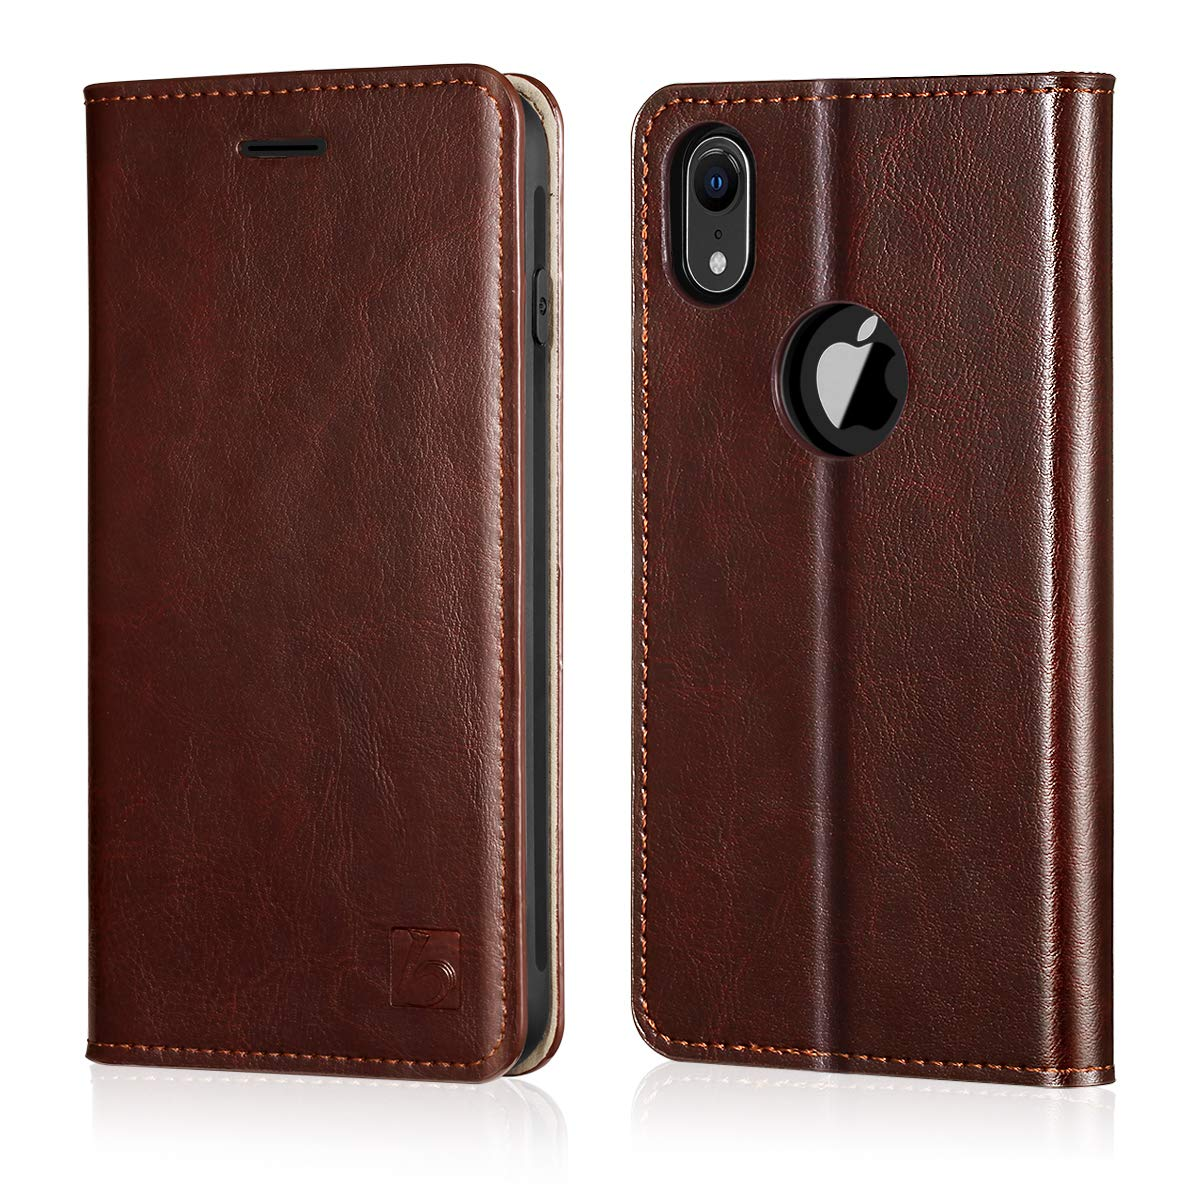 Belemay iPhone XR Wallet Case, iPhone XR Case, Genuine Cowhide Leather Flip Case Slim Folio Cover [Durable Soft TPU Inner Case] Card Holder Slots, Kickstand, Cash Pockets Compatible iPhone XR, Brown